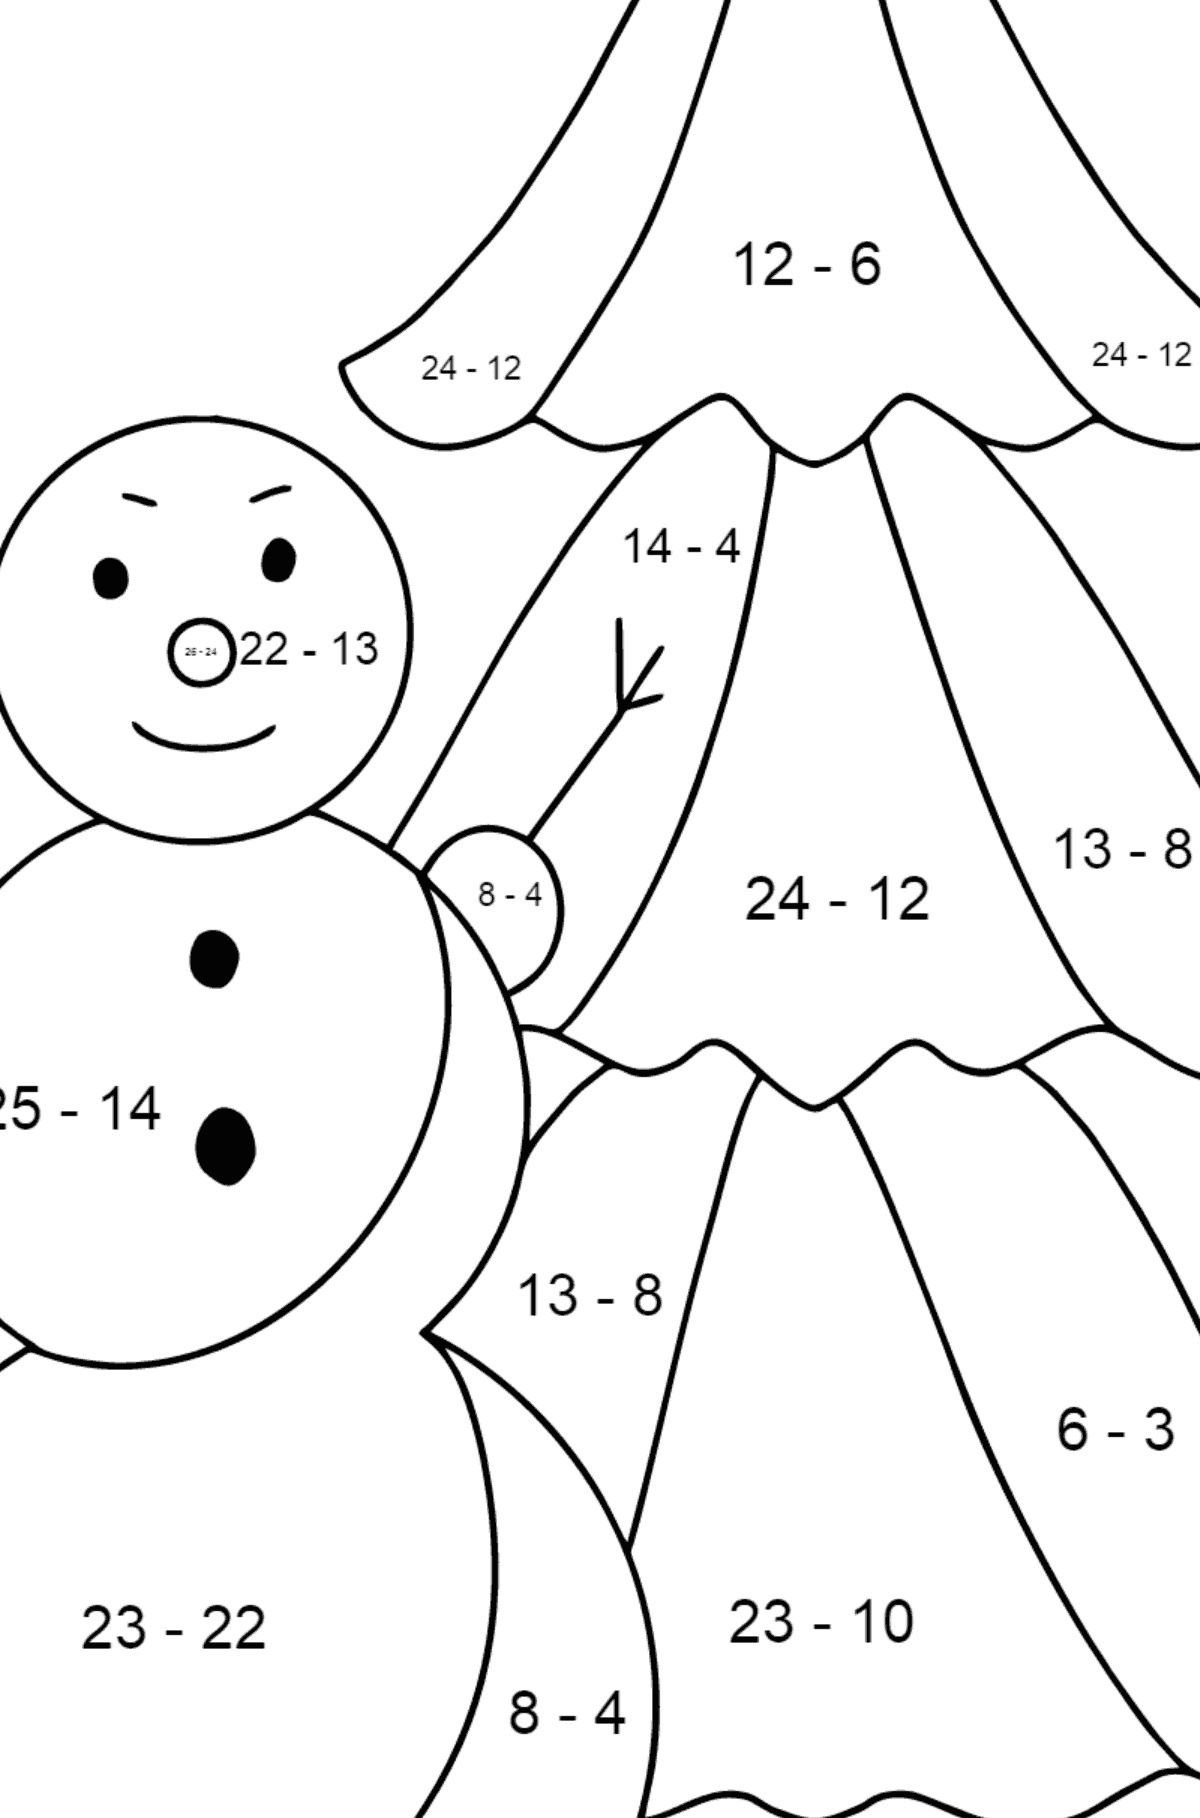 Winter Coloring Page - A Snowman with a Beautiful Christmas Tree for Children  - Color by Number Substraction